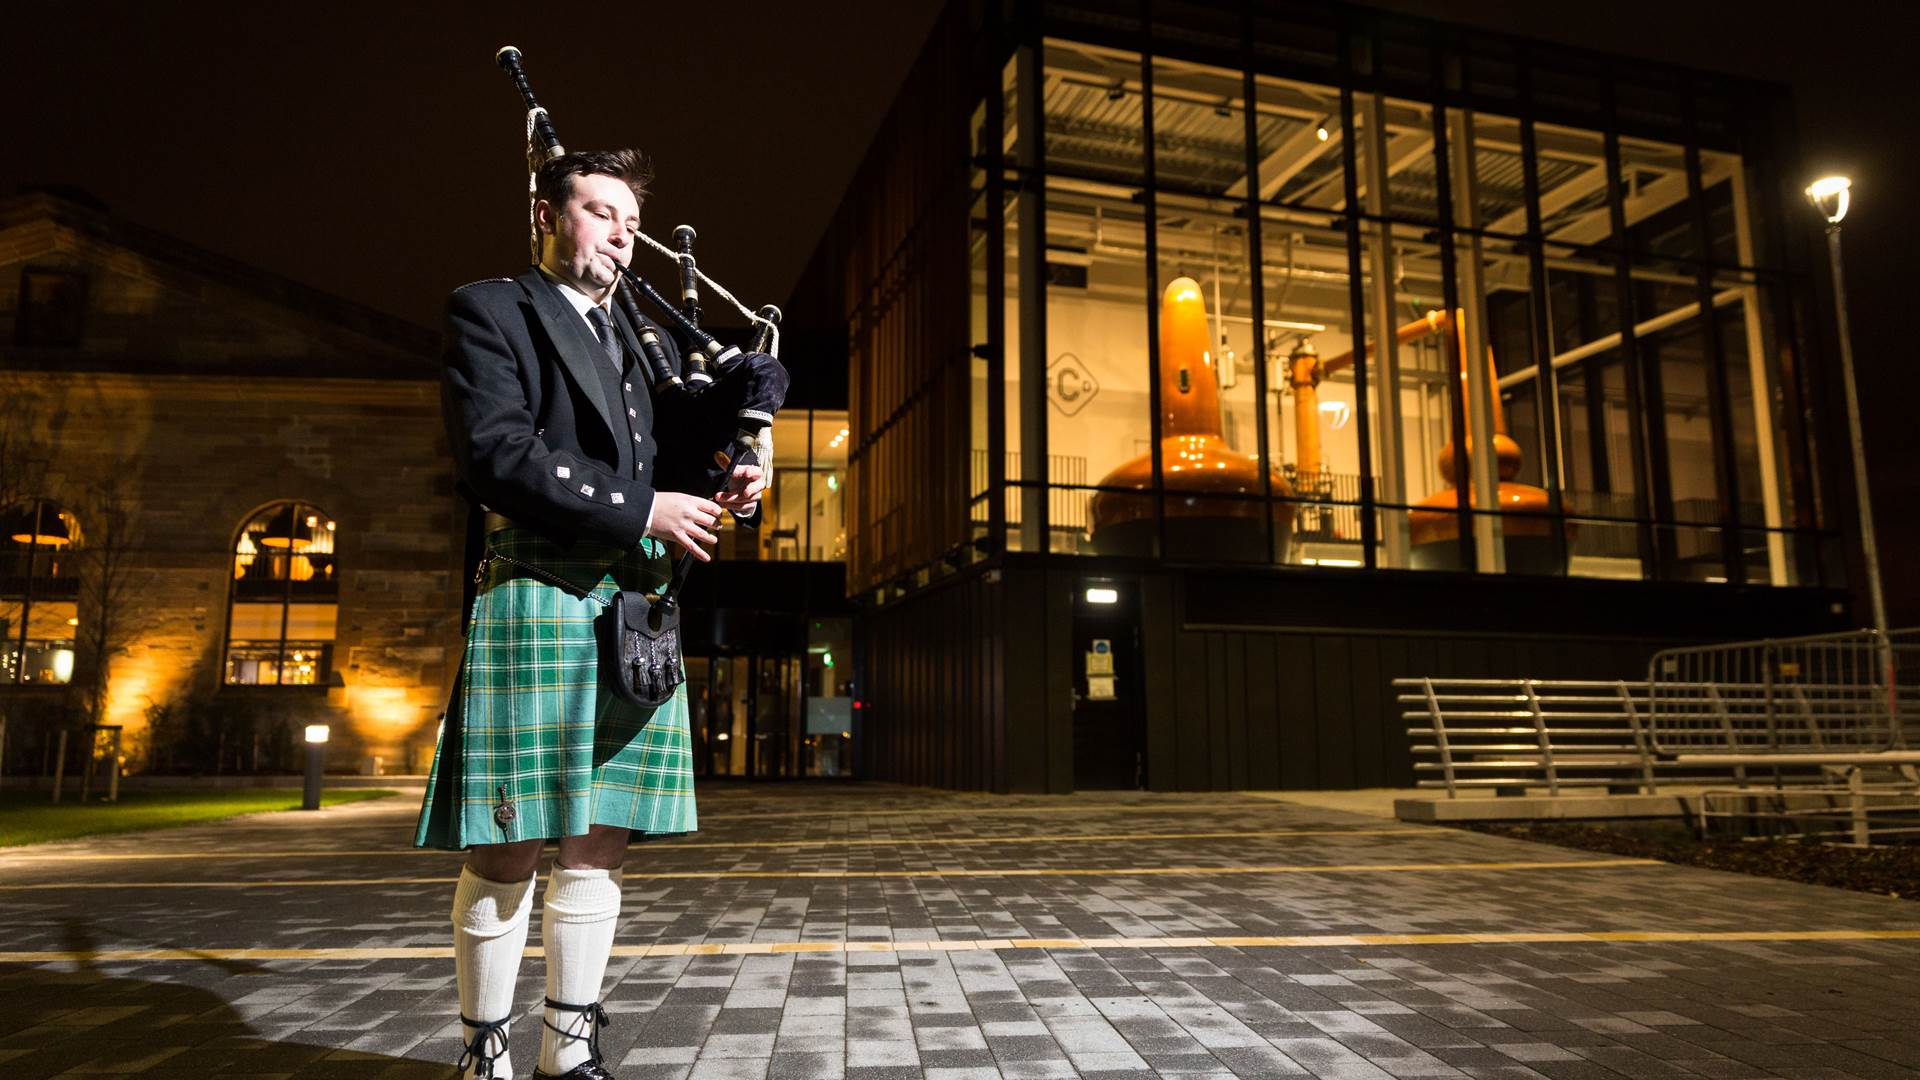 Scottish Piper outside The Clydeside Distillery welcoming evening guests